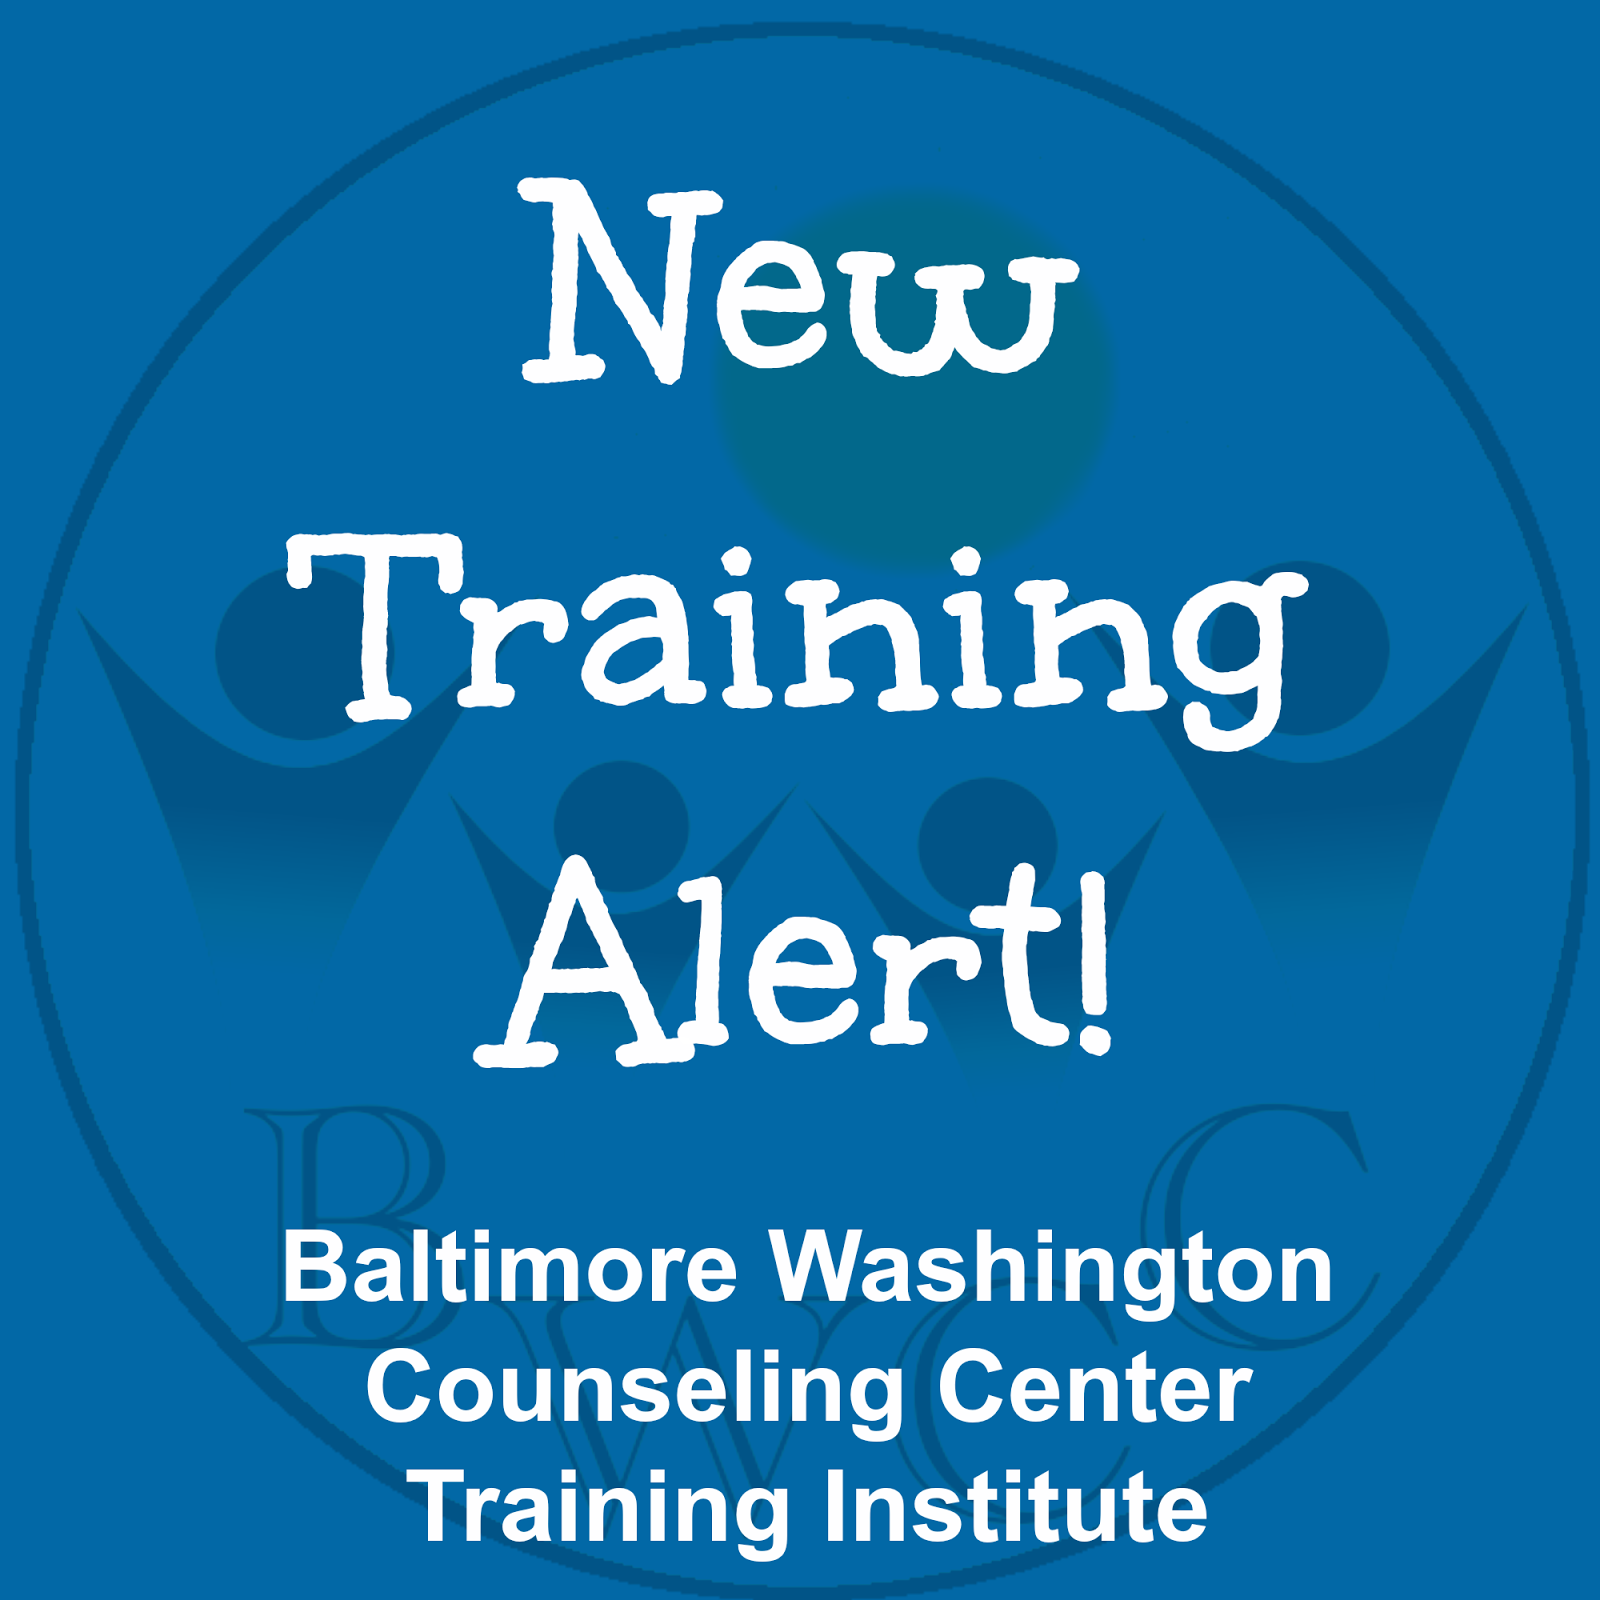 TRAINING! Addiction: Relapse is part of recovery on April 13, 2015 in Millersville, MD